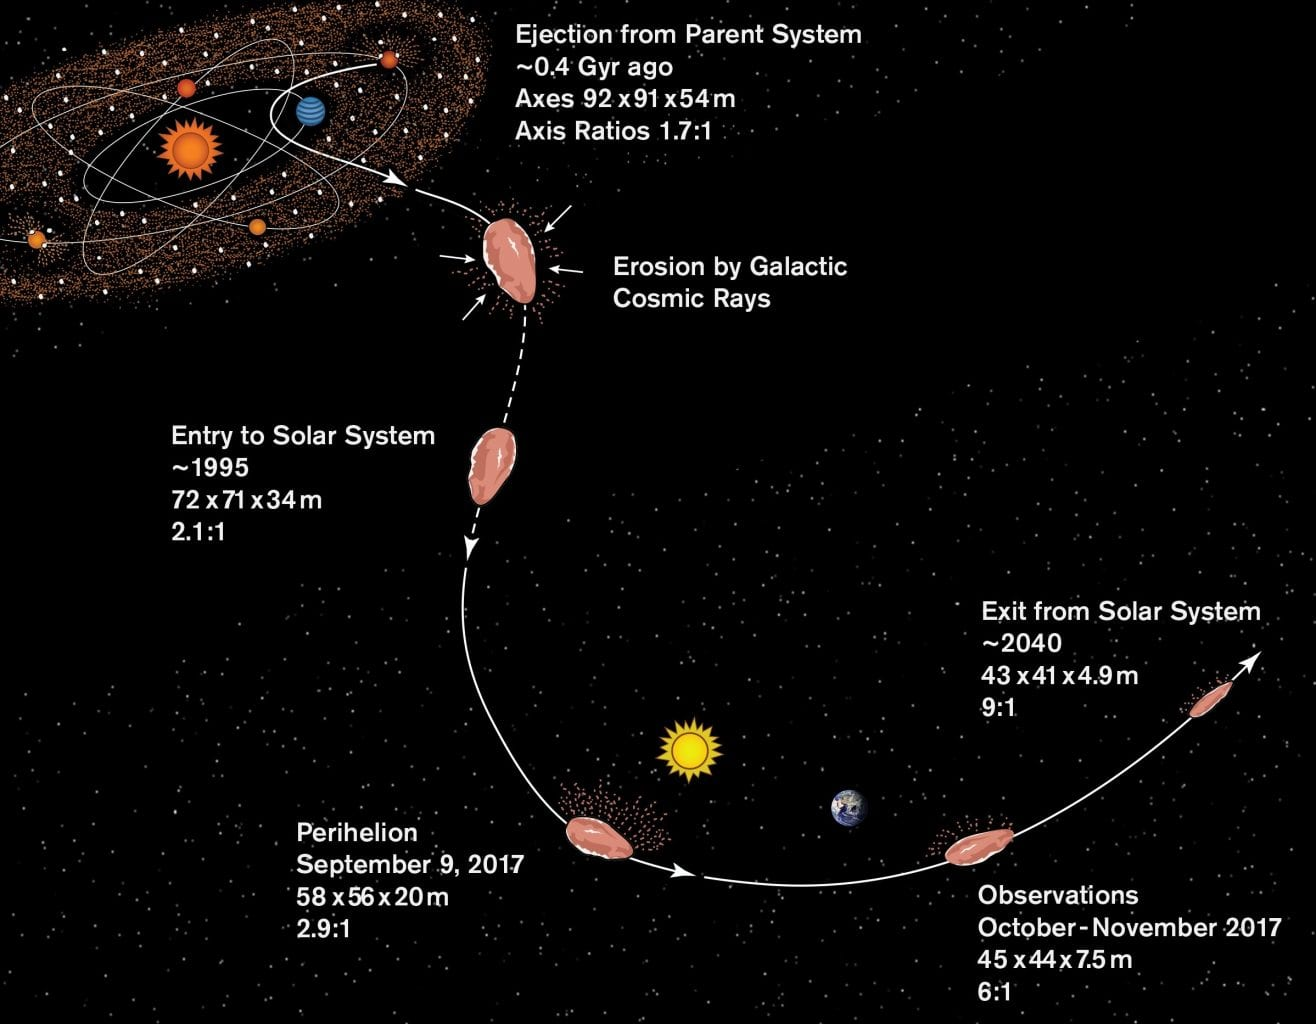 Here is an illustration of the newly-suggested origin and history of Oumuamua. Credit: S. Selkirk/ASU